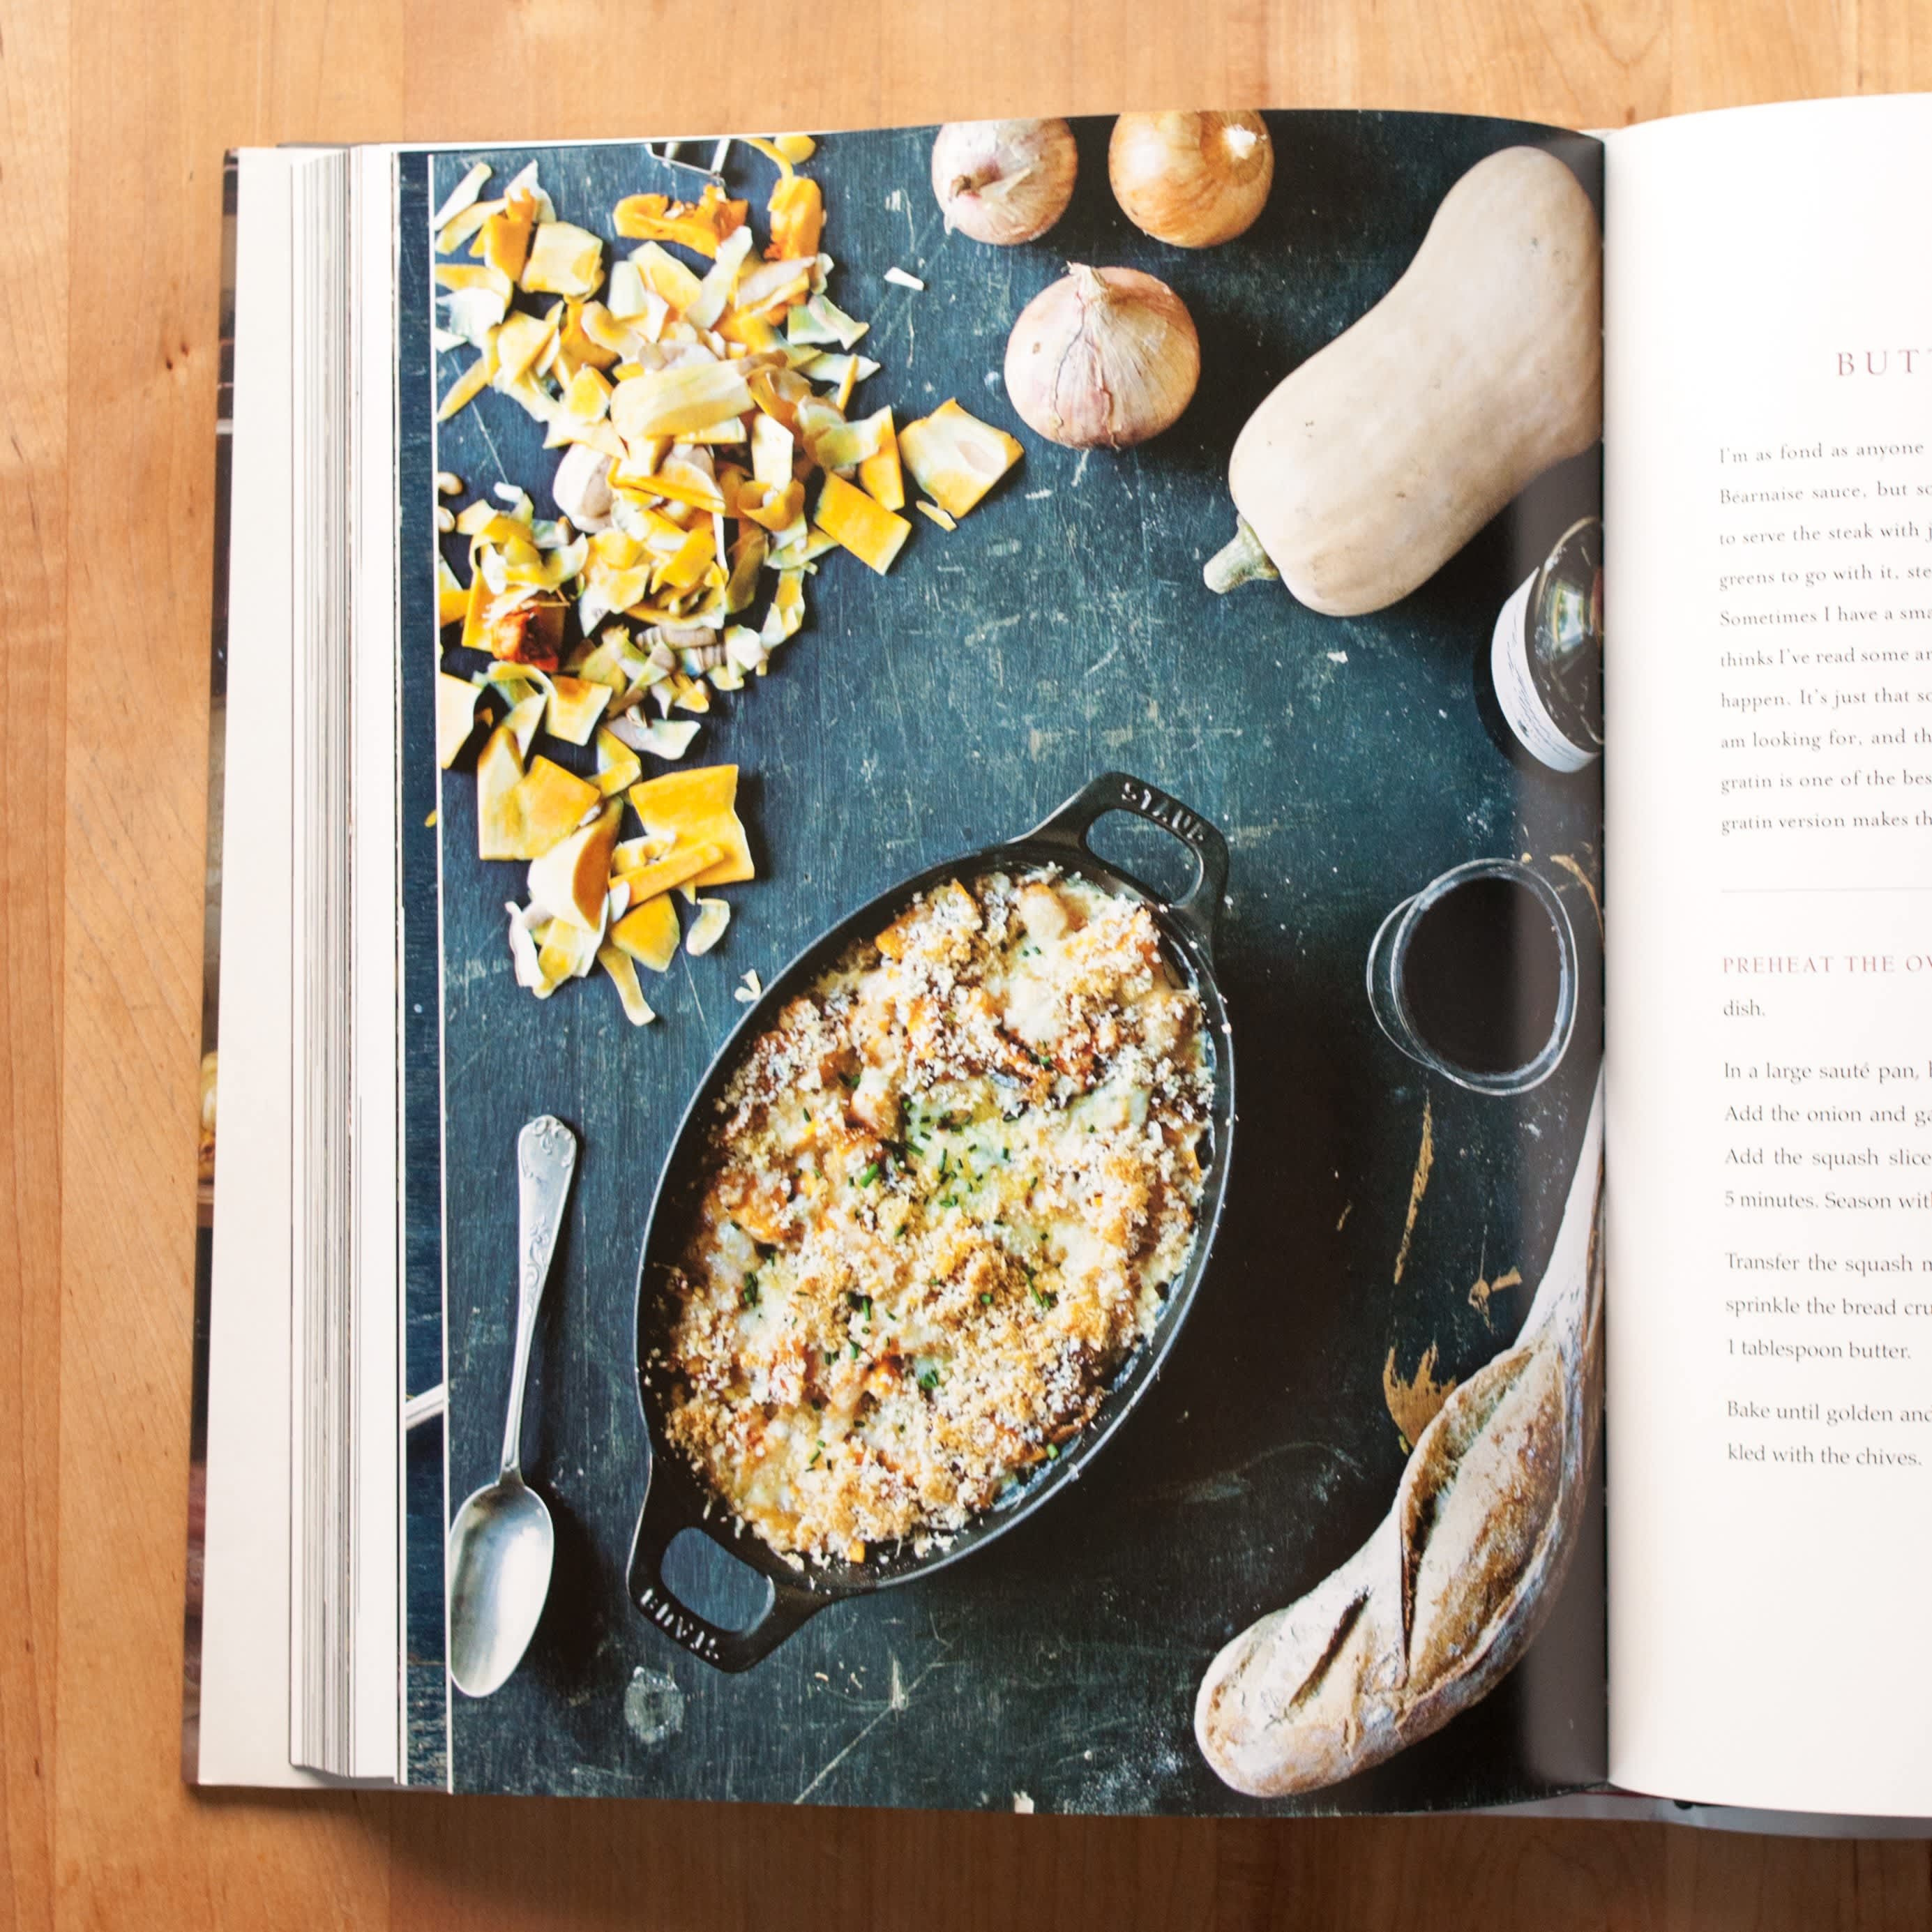 With This Cookbook, You Can Live the Dreamy French Farmhouse Life You've Always Wanted: gallery image 5